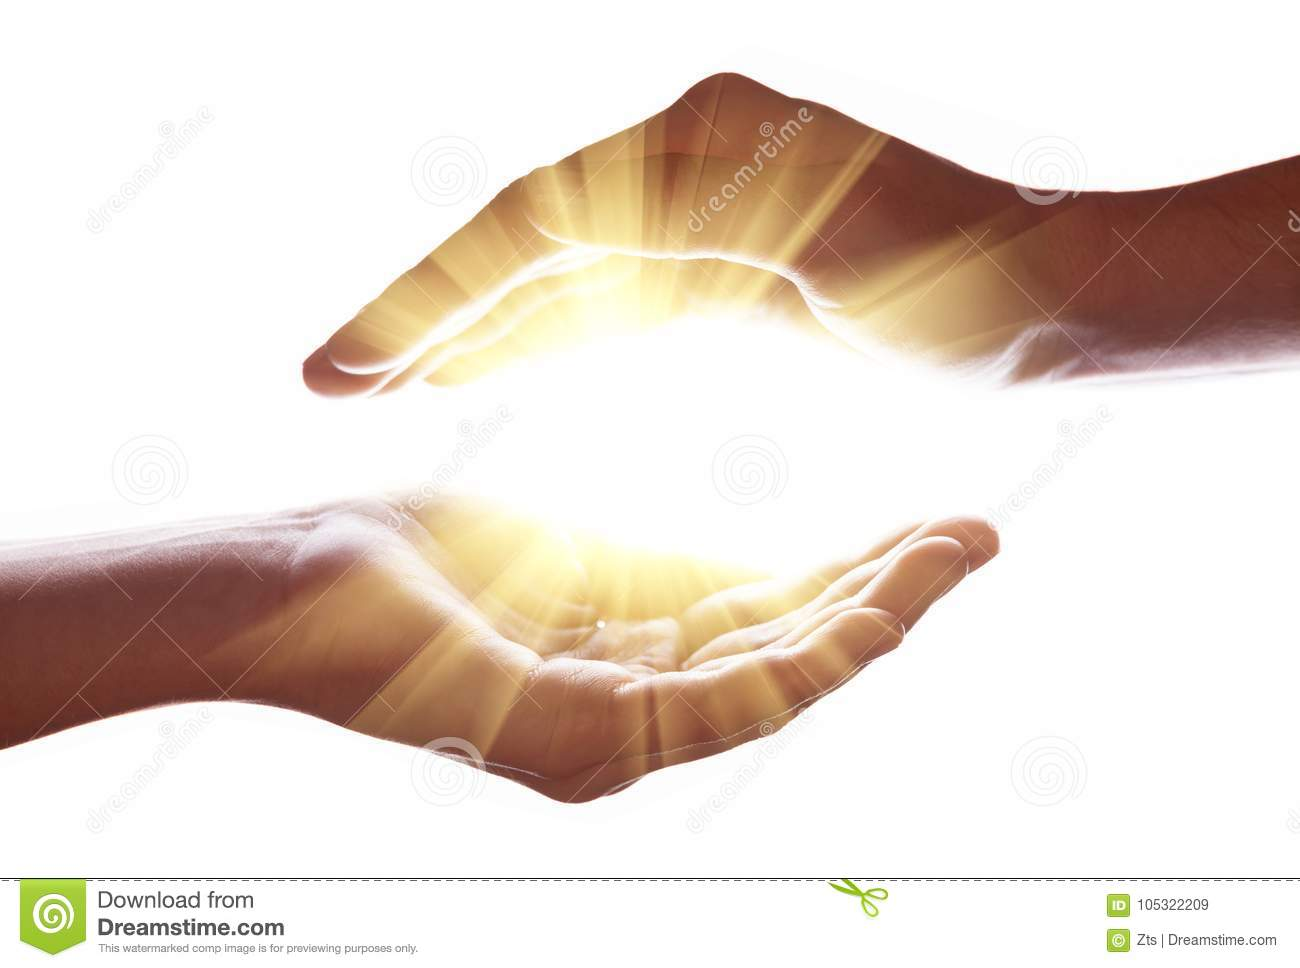 Woman hands protecting and containing bright, glowing, radiant, shining light. Emitting rays or beams expanding of center.